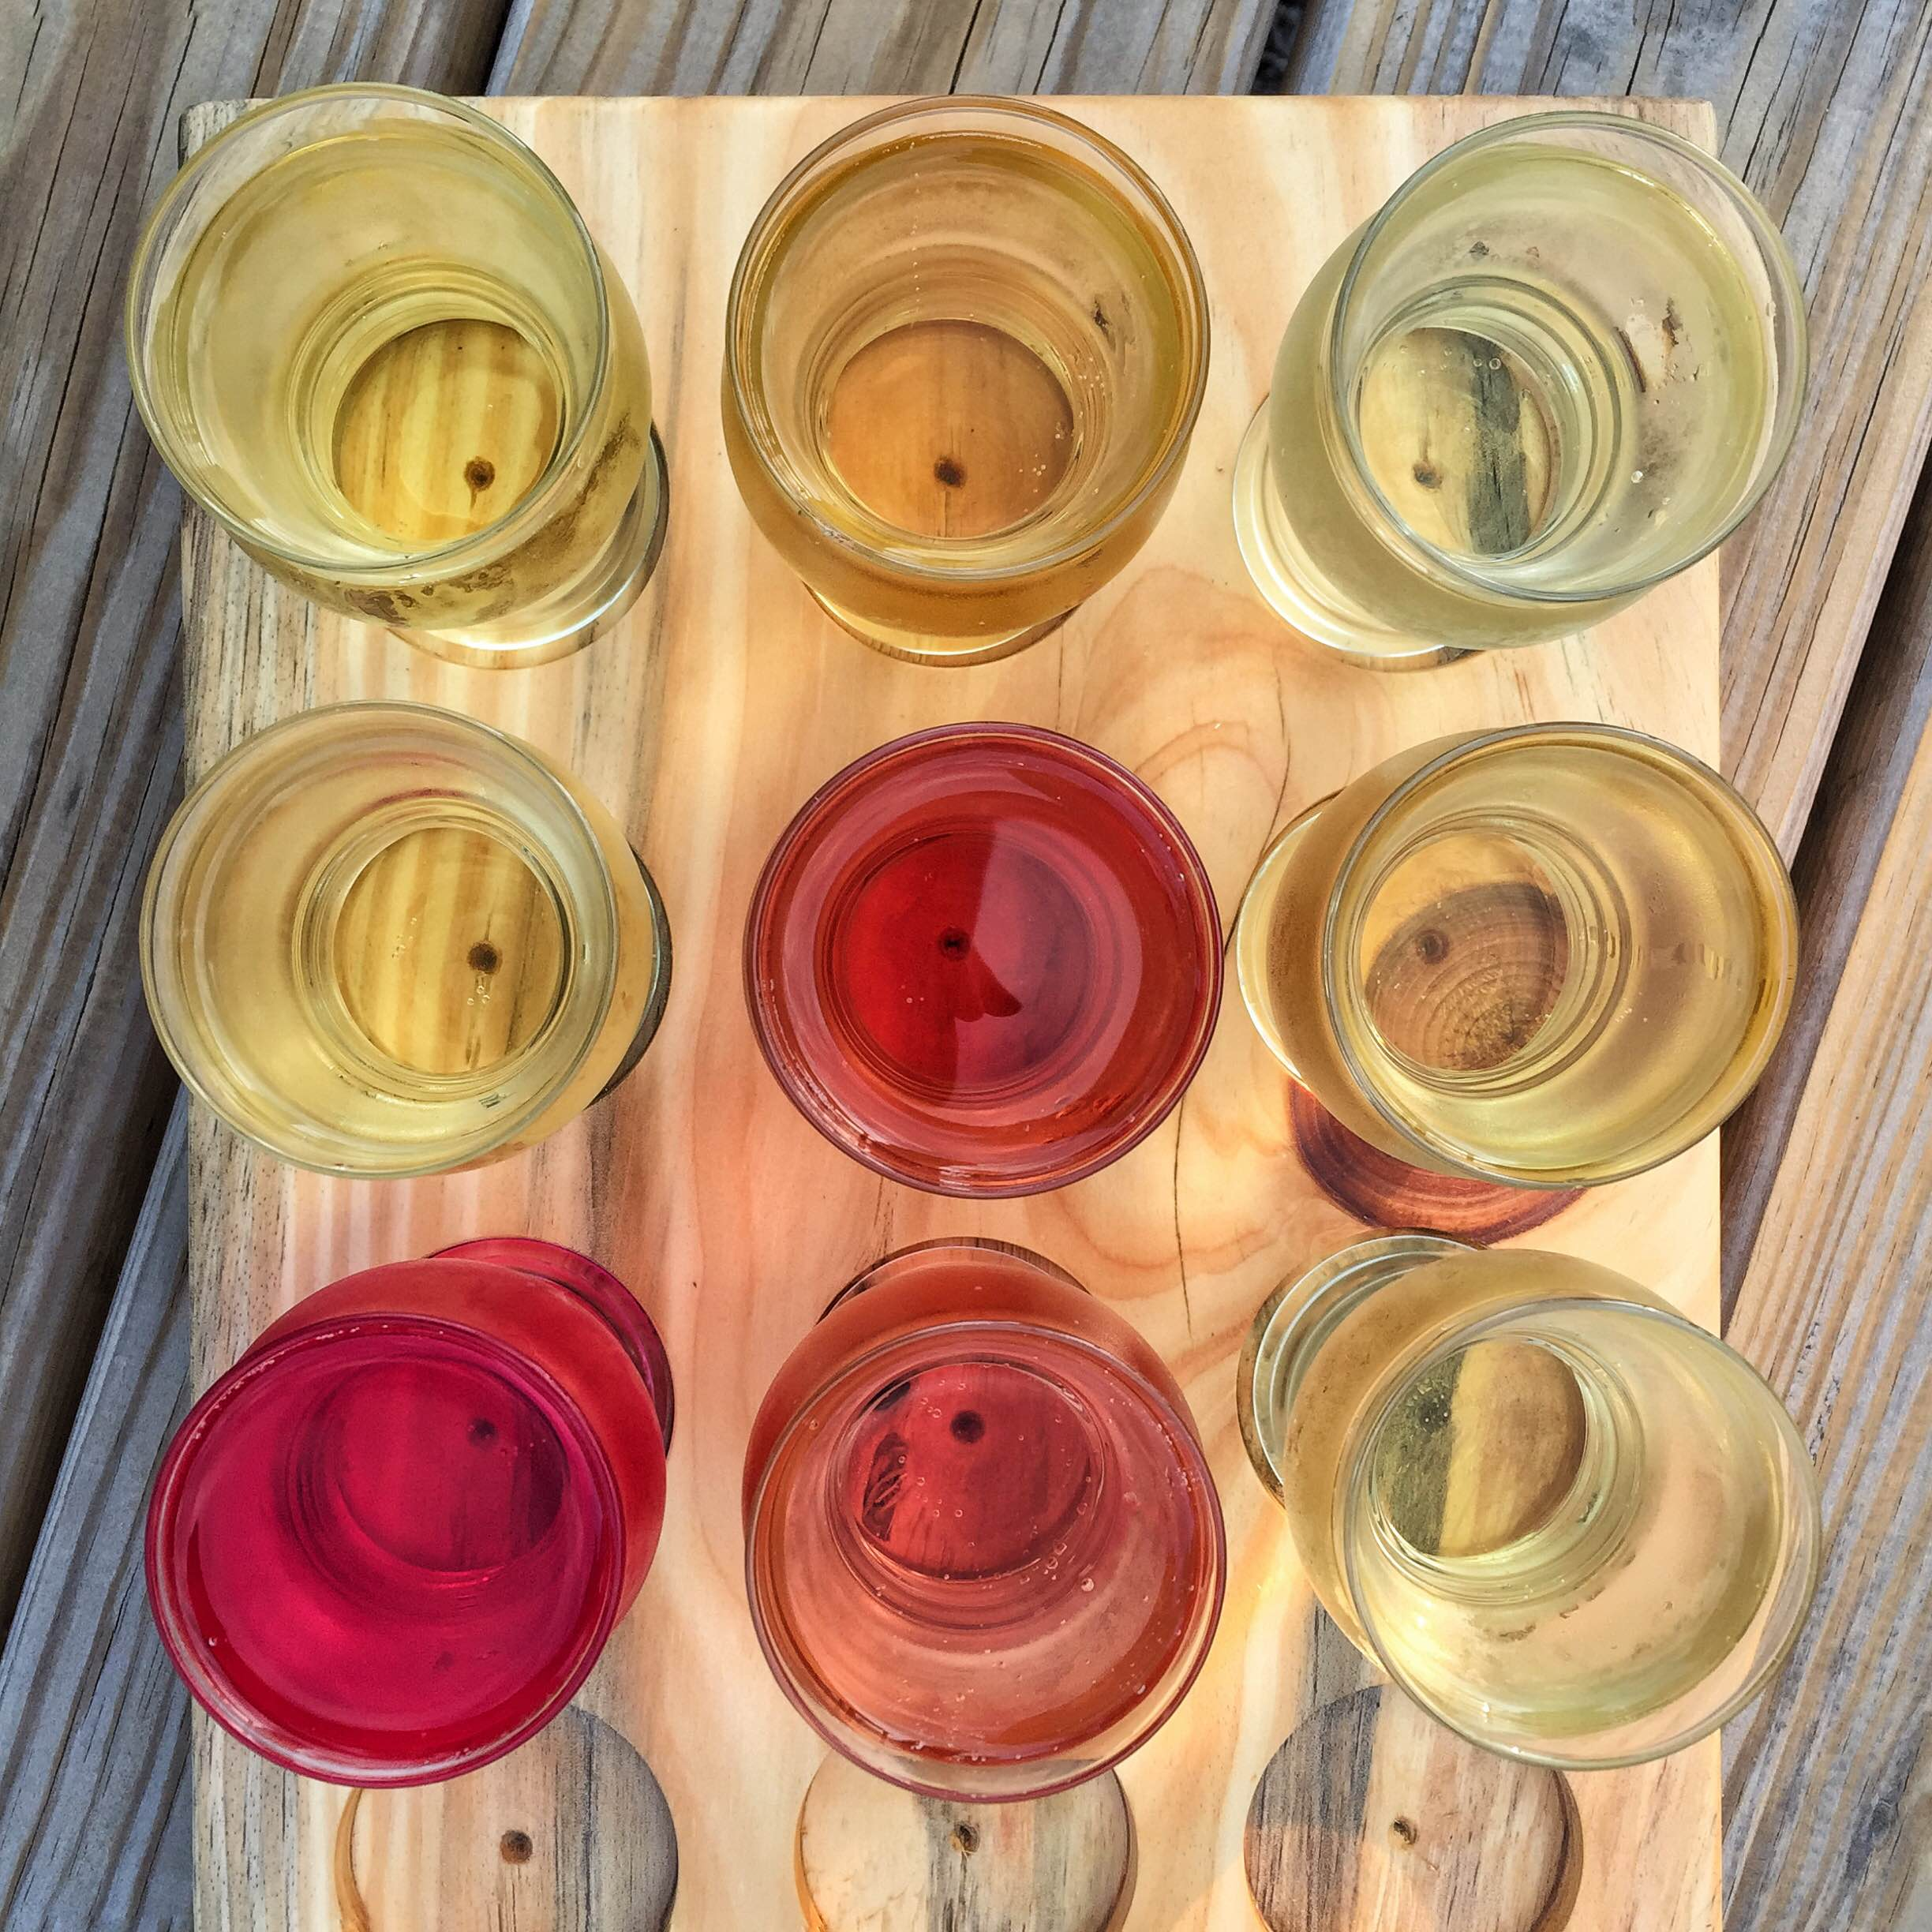 Flight of craft ciders at Pennings Farm (photo by Amber Pierce)